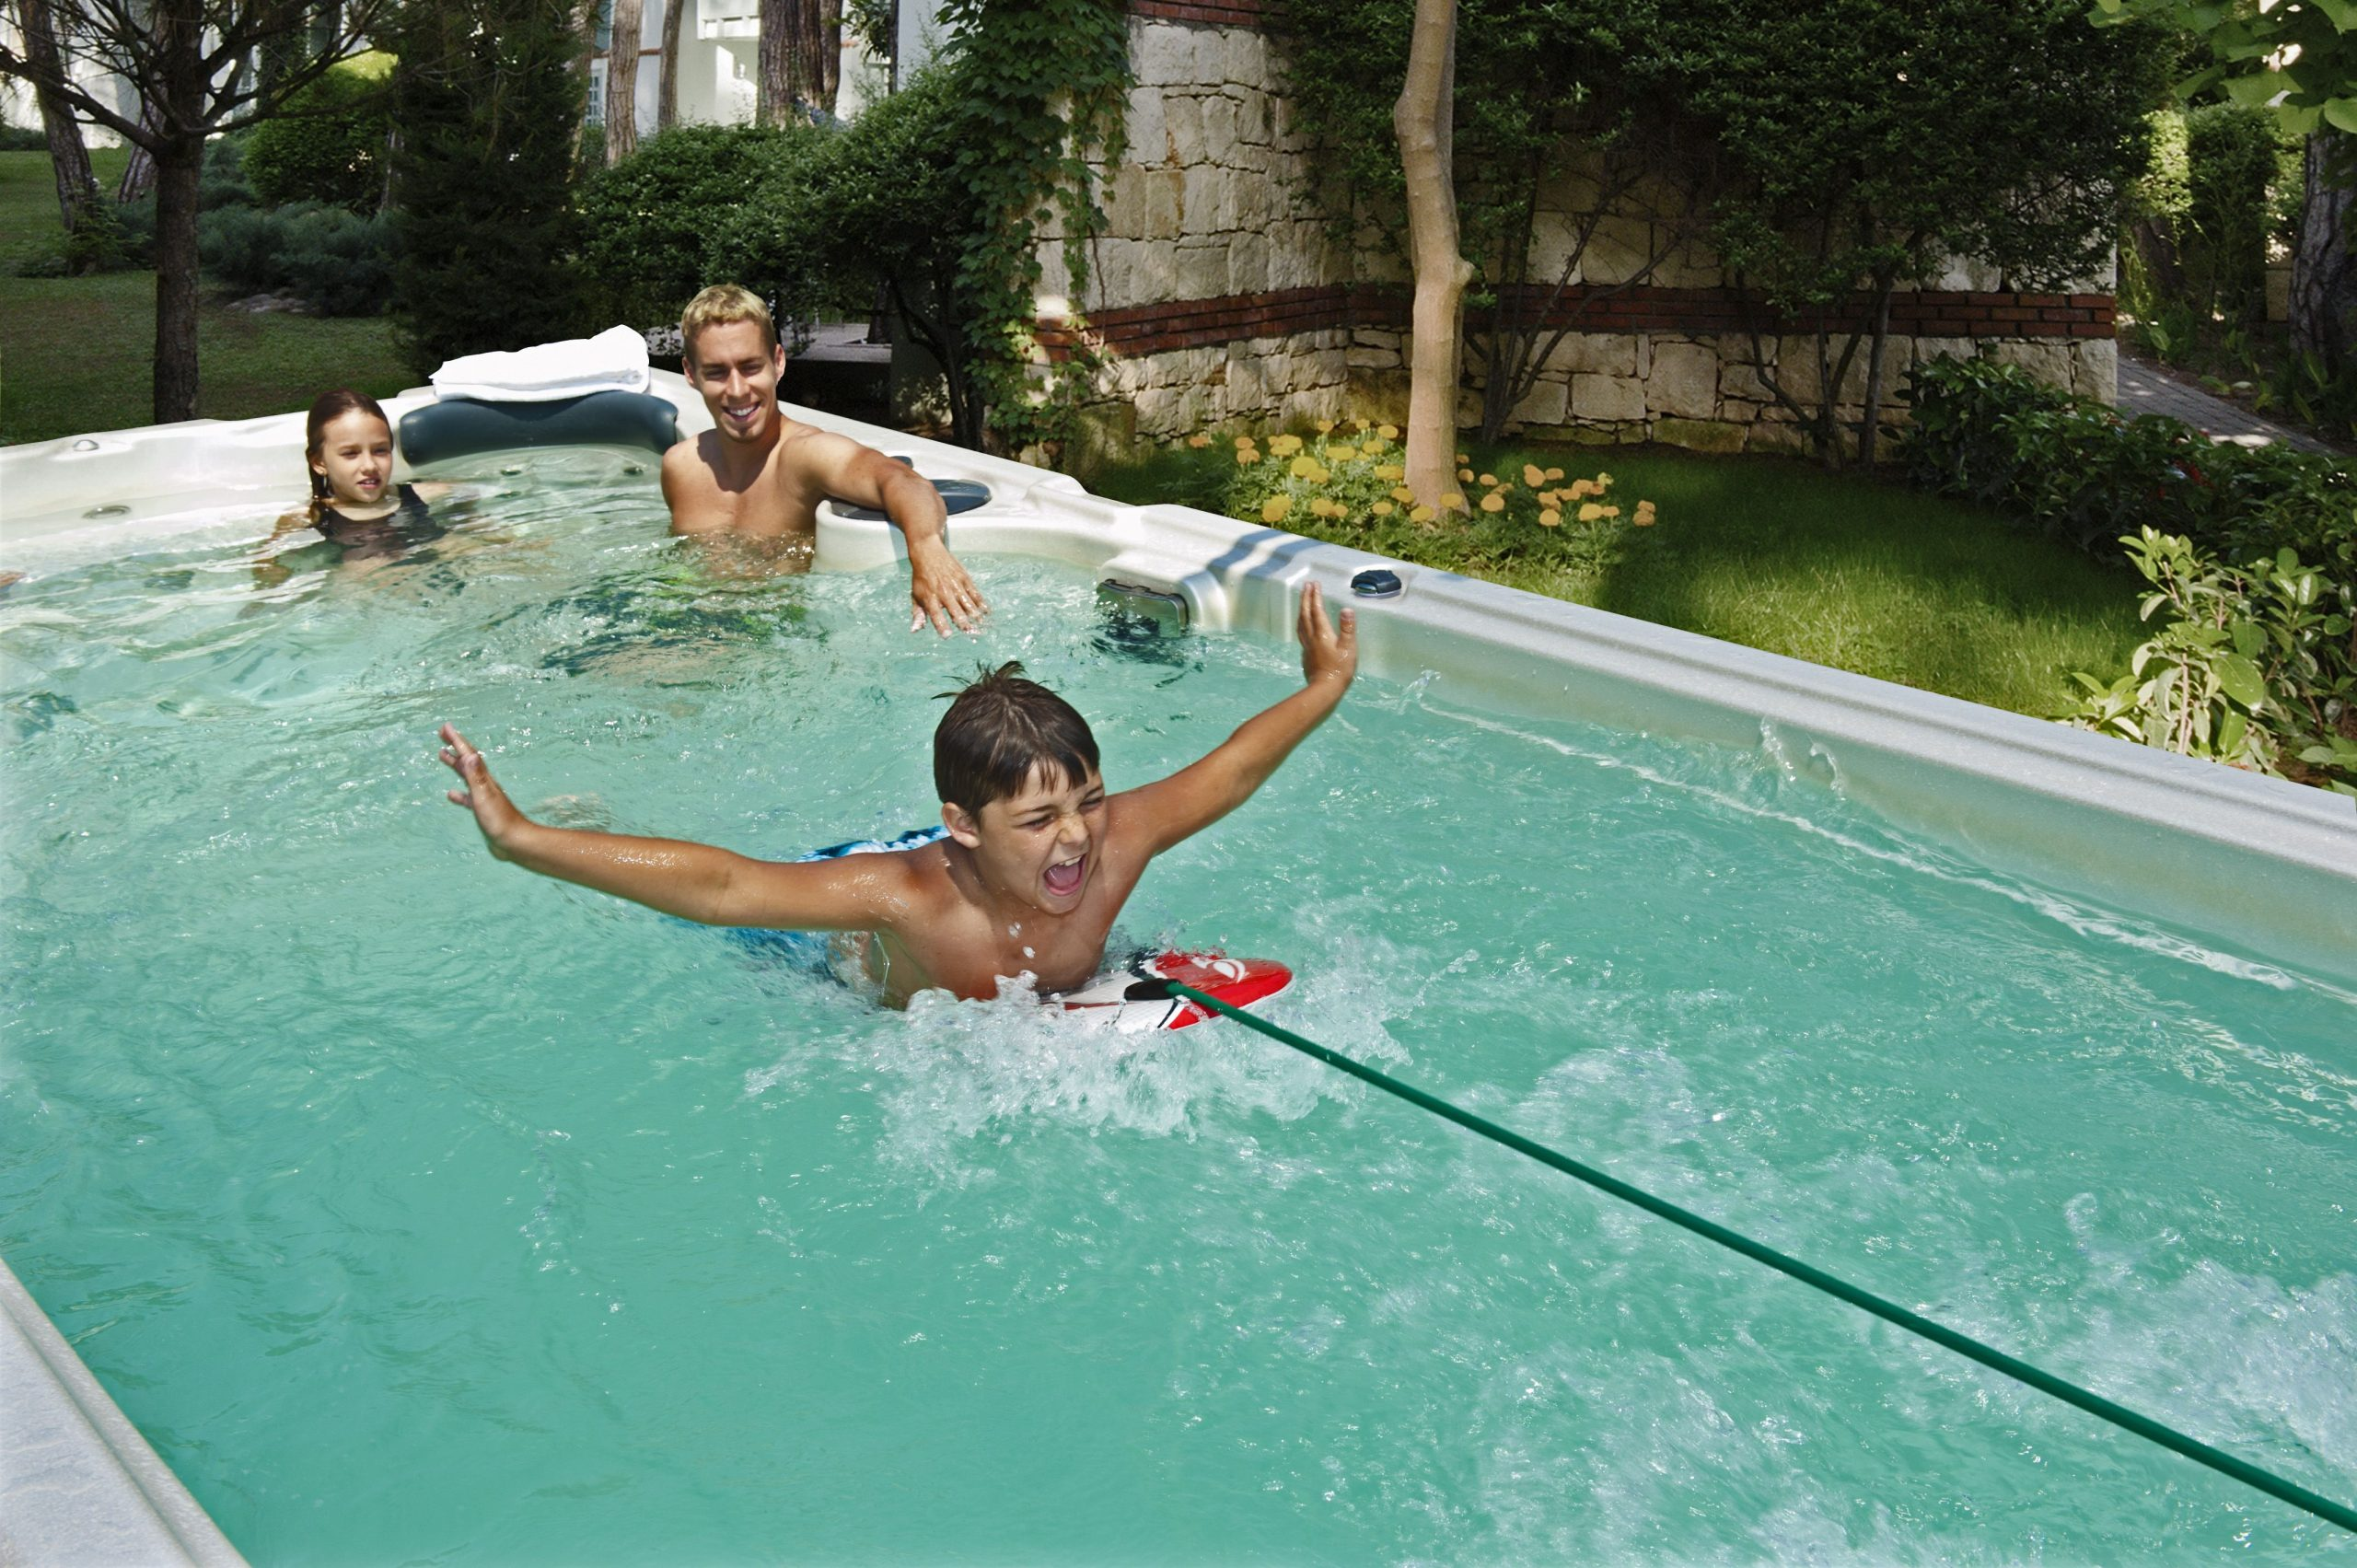 The Swimming Current That'S Produced By A Hydropool ... serapportantà Piscine O'Bya